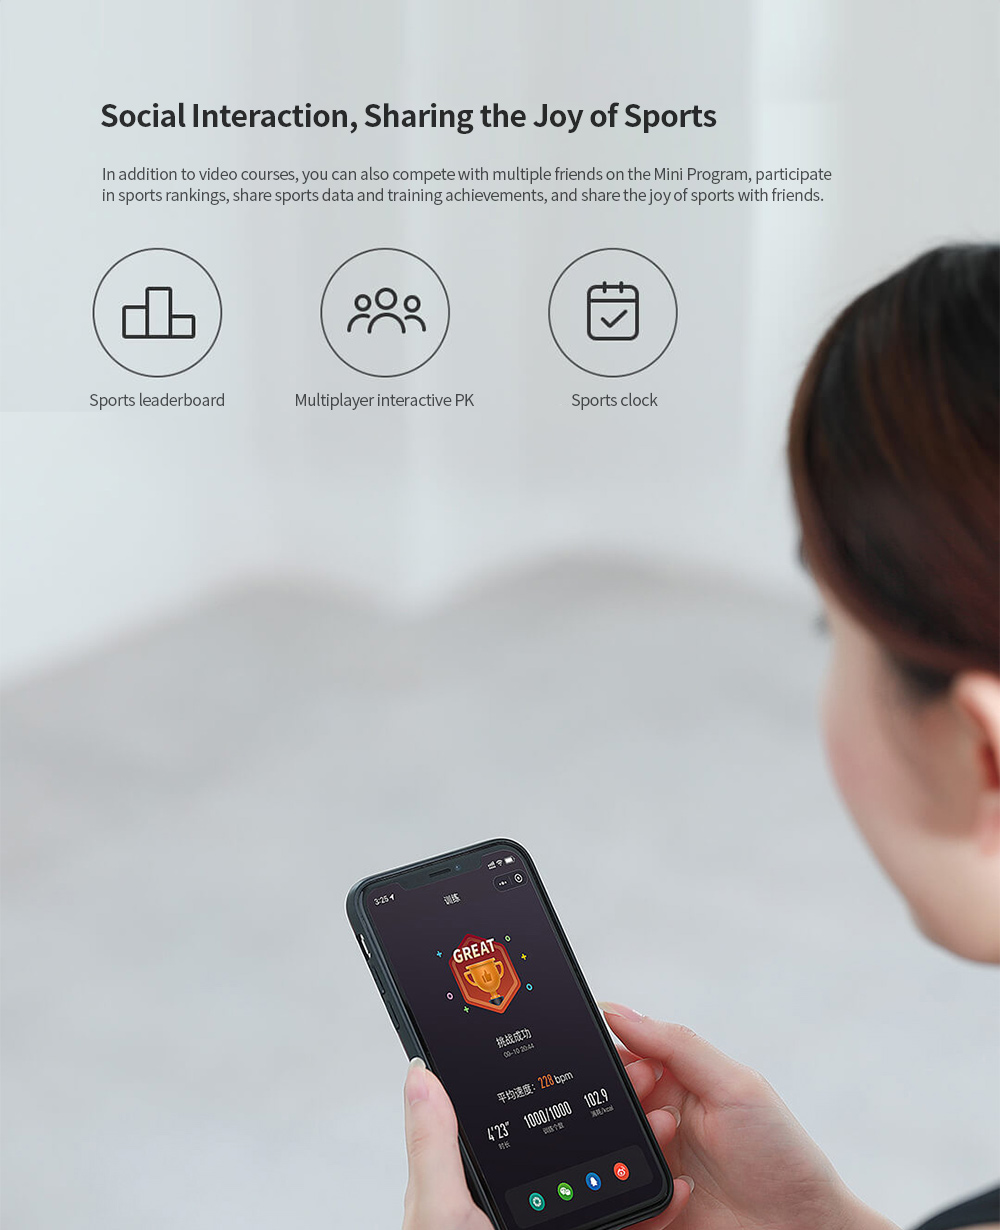 Smart Training Skipping Rope from Youpin - Black Social Interaction, Sharing the Joy of Sports